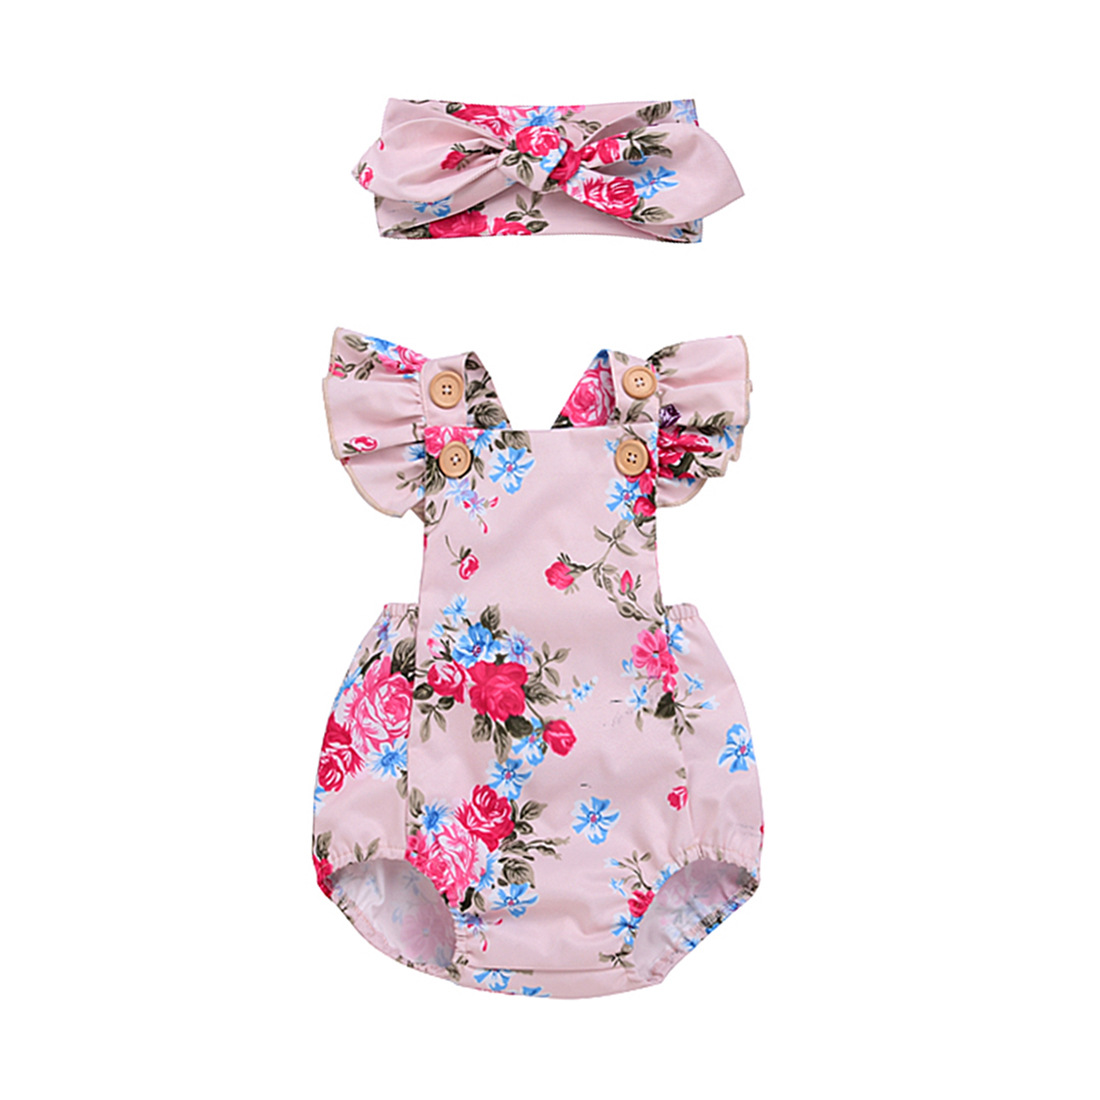 Fashion design Baby girls Clothes summer Newborn Baby Romper pink Flowers Girl Baby Clothes 2pcs set Costume Overalls floral